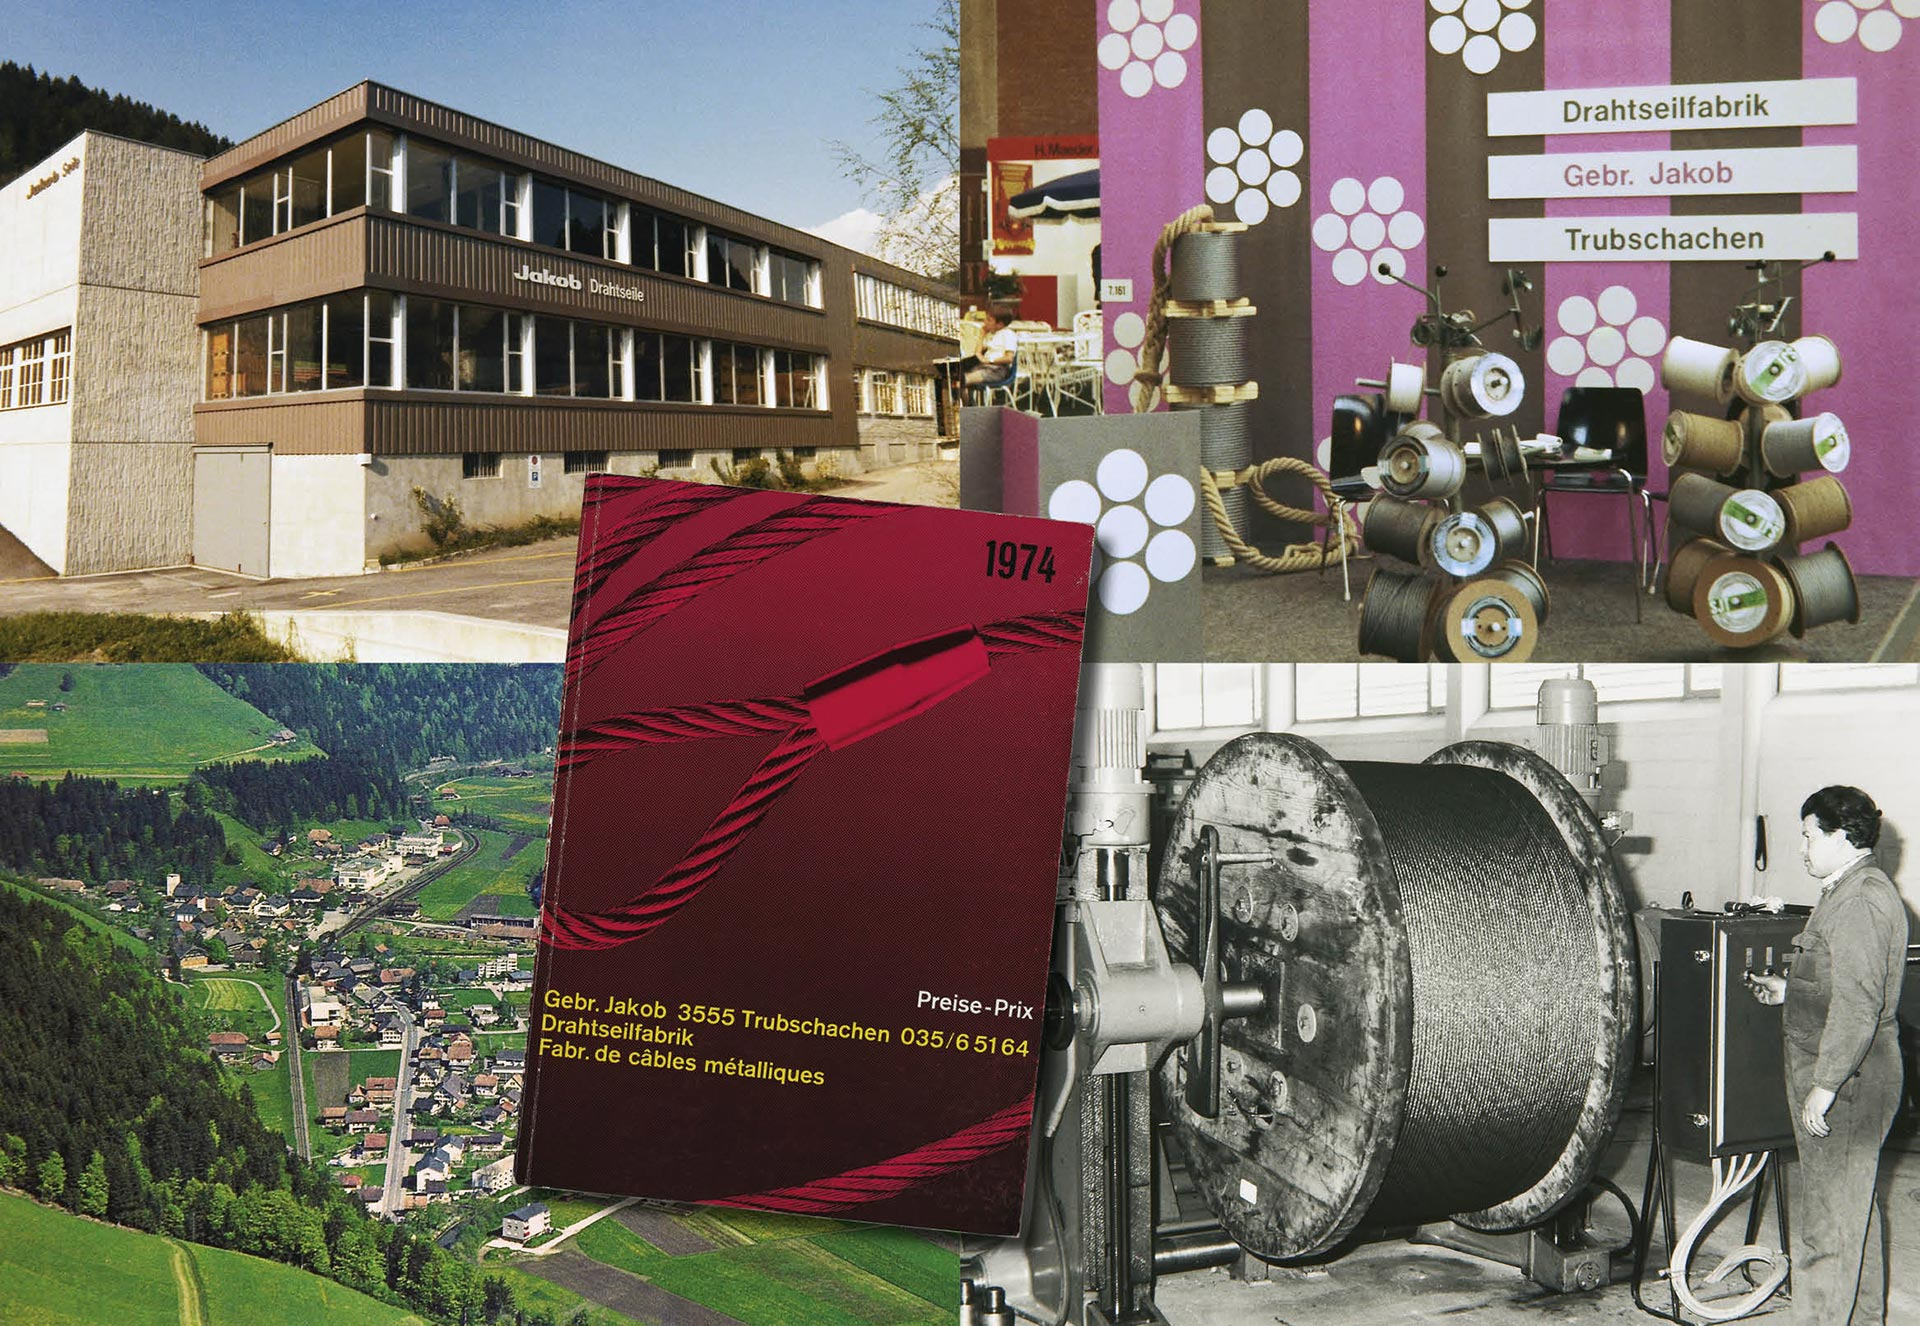 Image montage of the Jakob office in 1970s, trade fair presentations and a price list